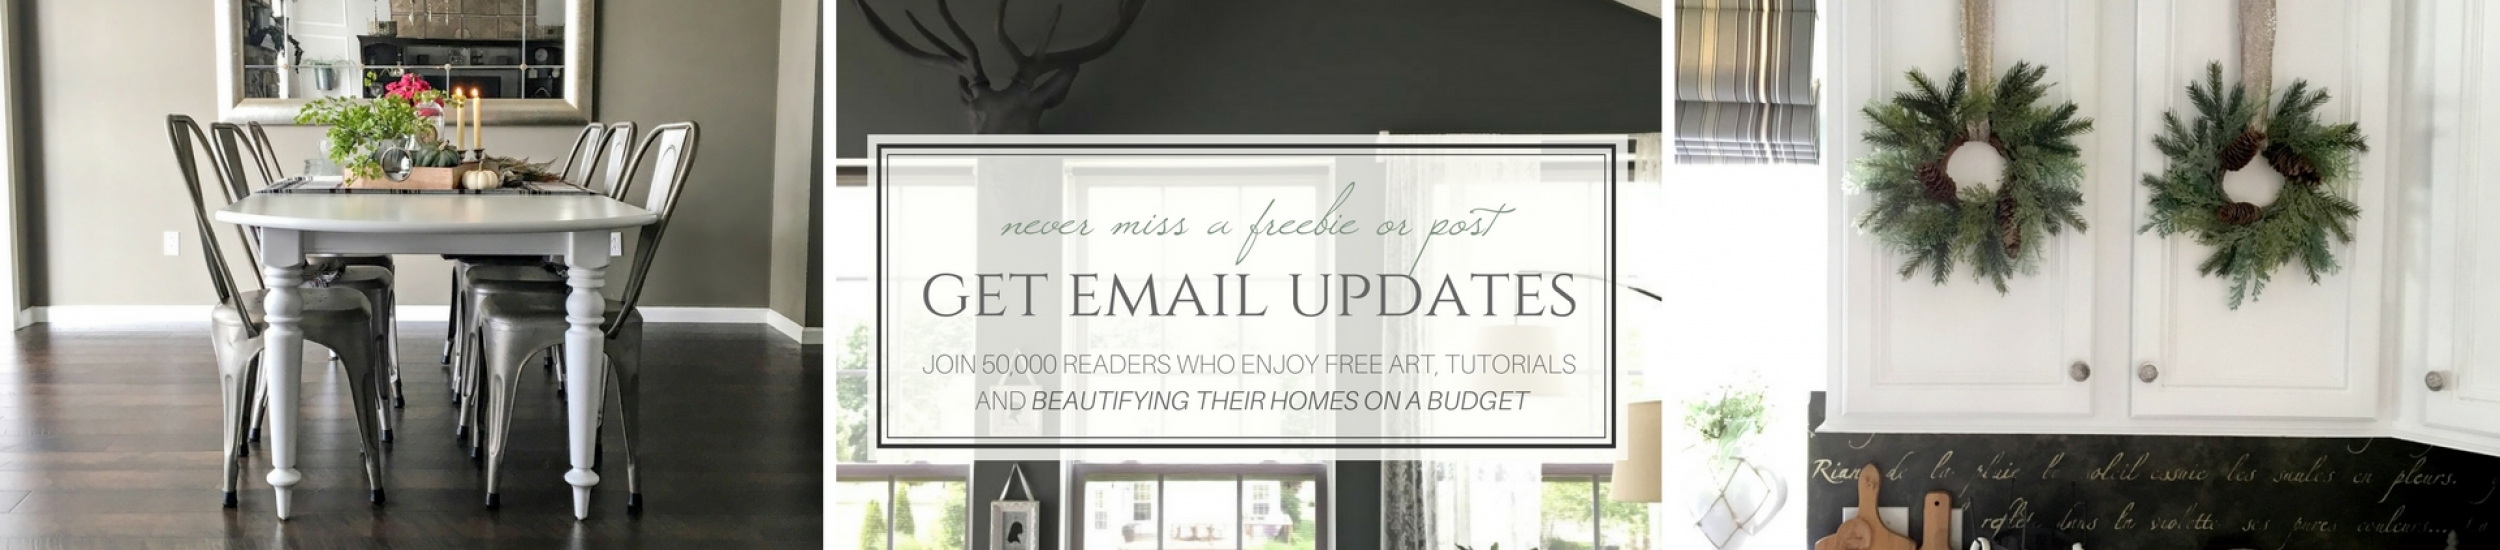 Get Email Updates at Snazzy Little Things